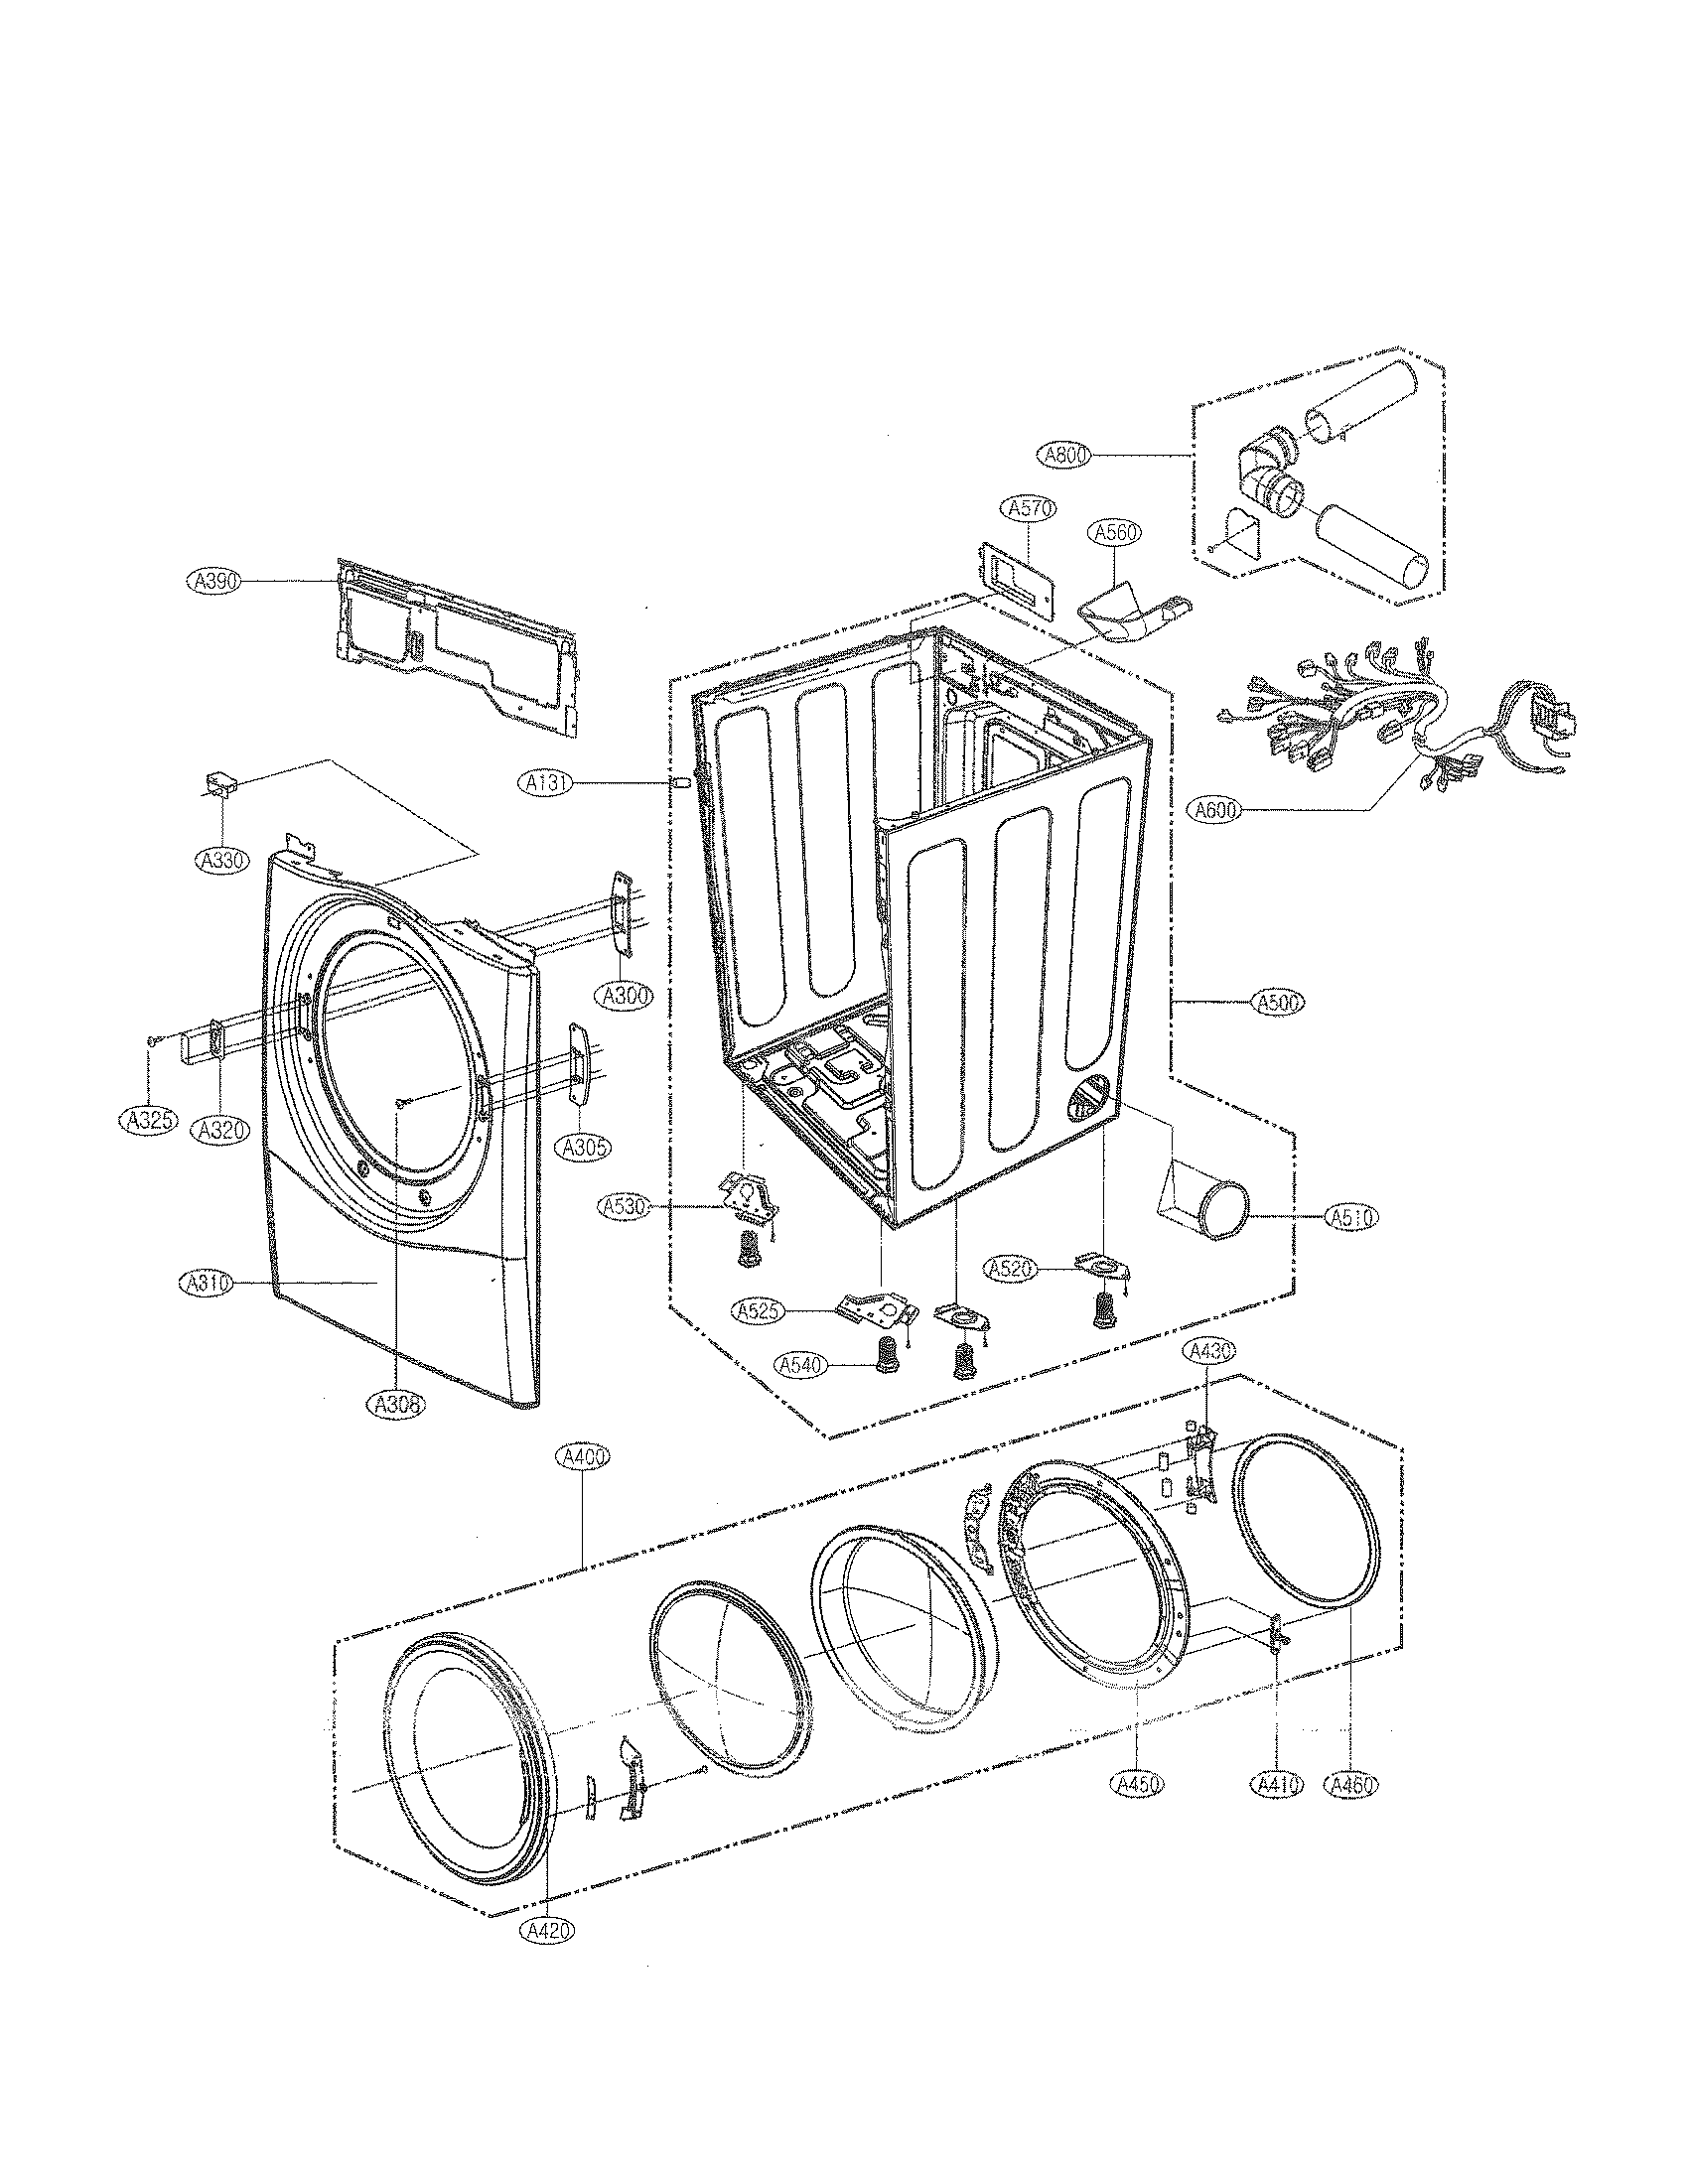 Lg model DLE2350R residential dryer genuine parts